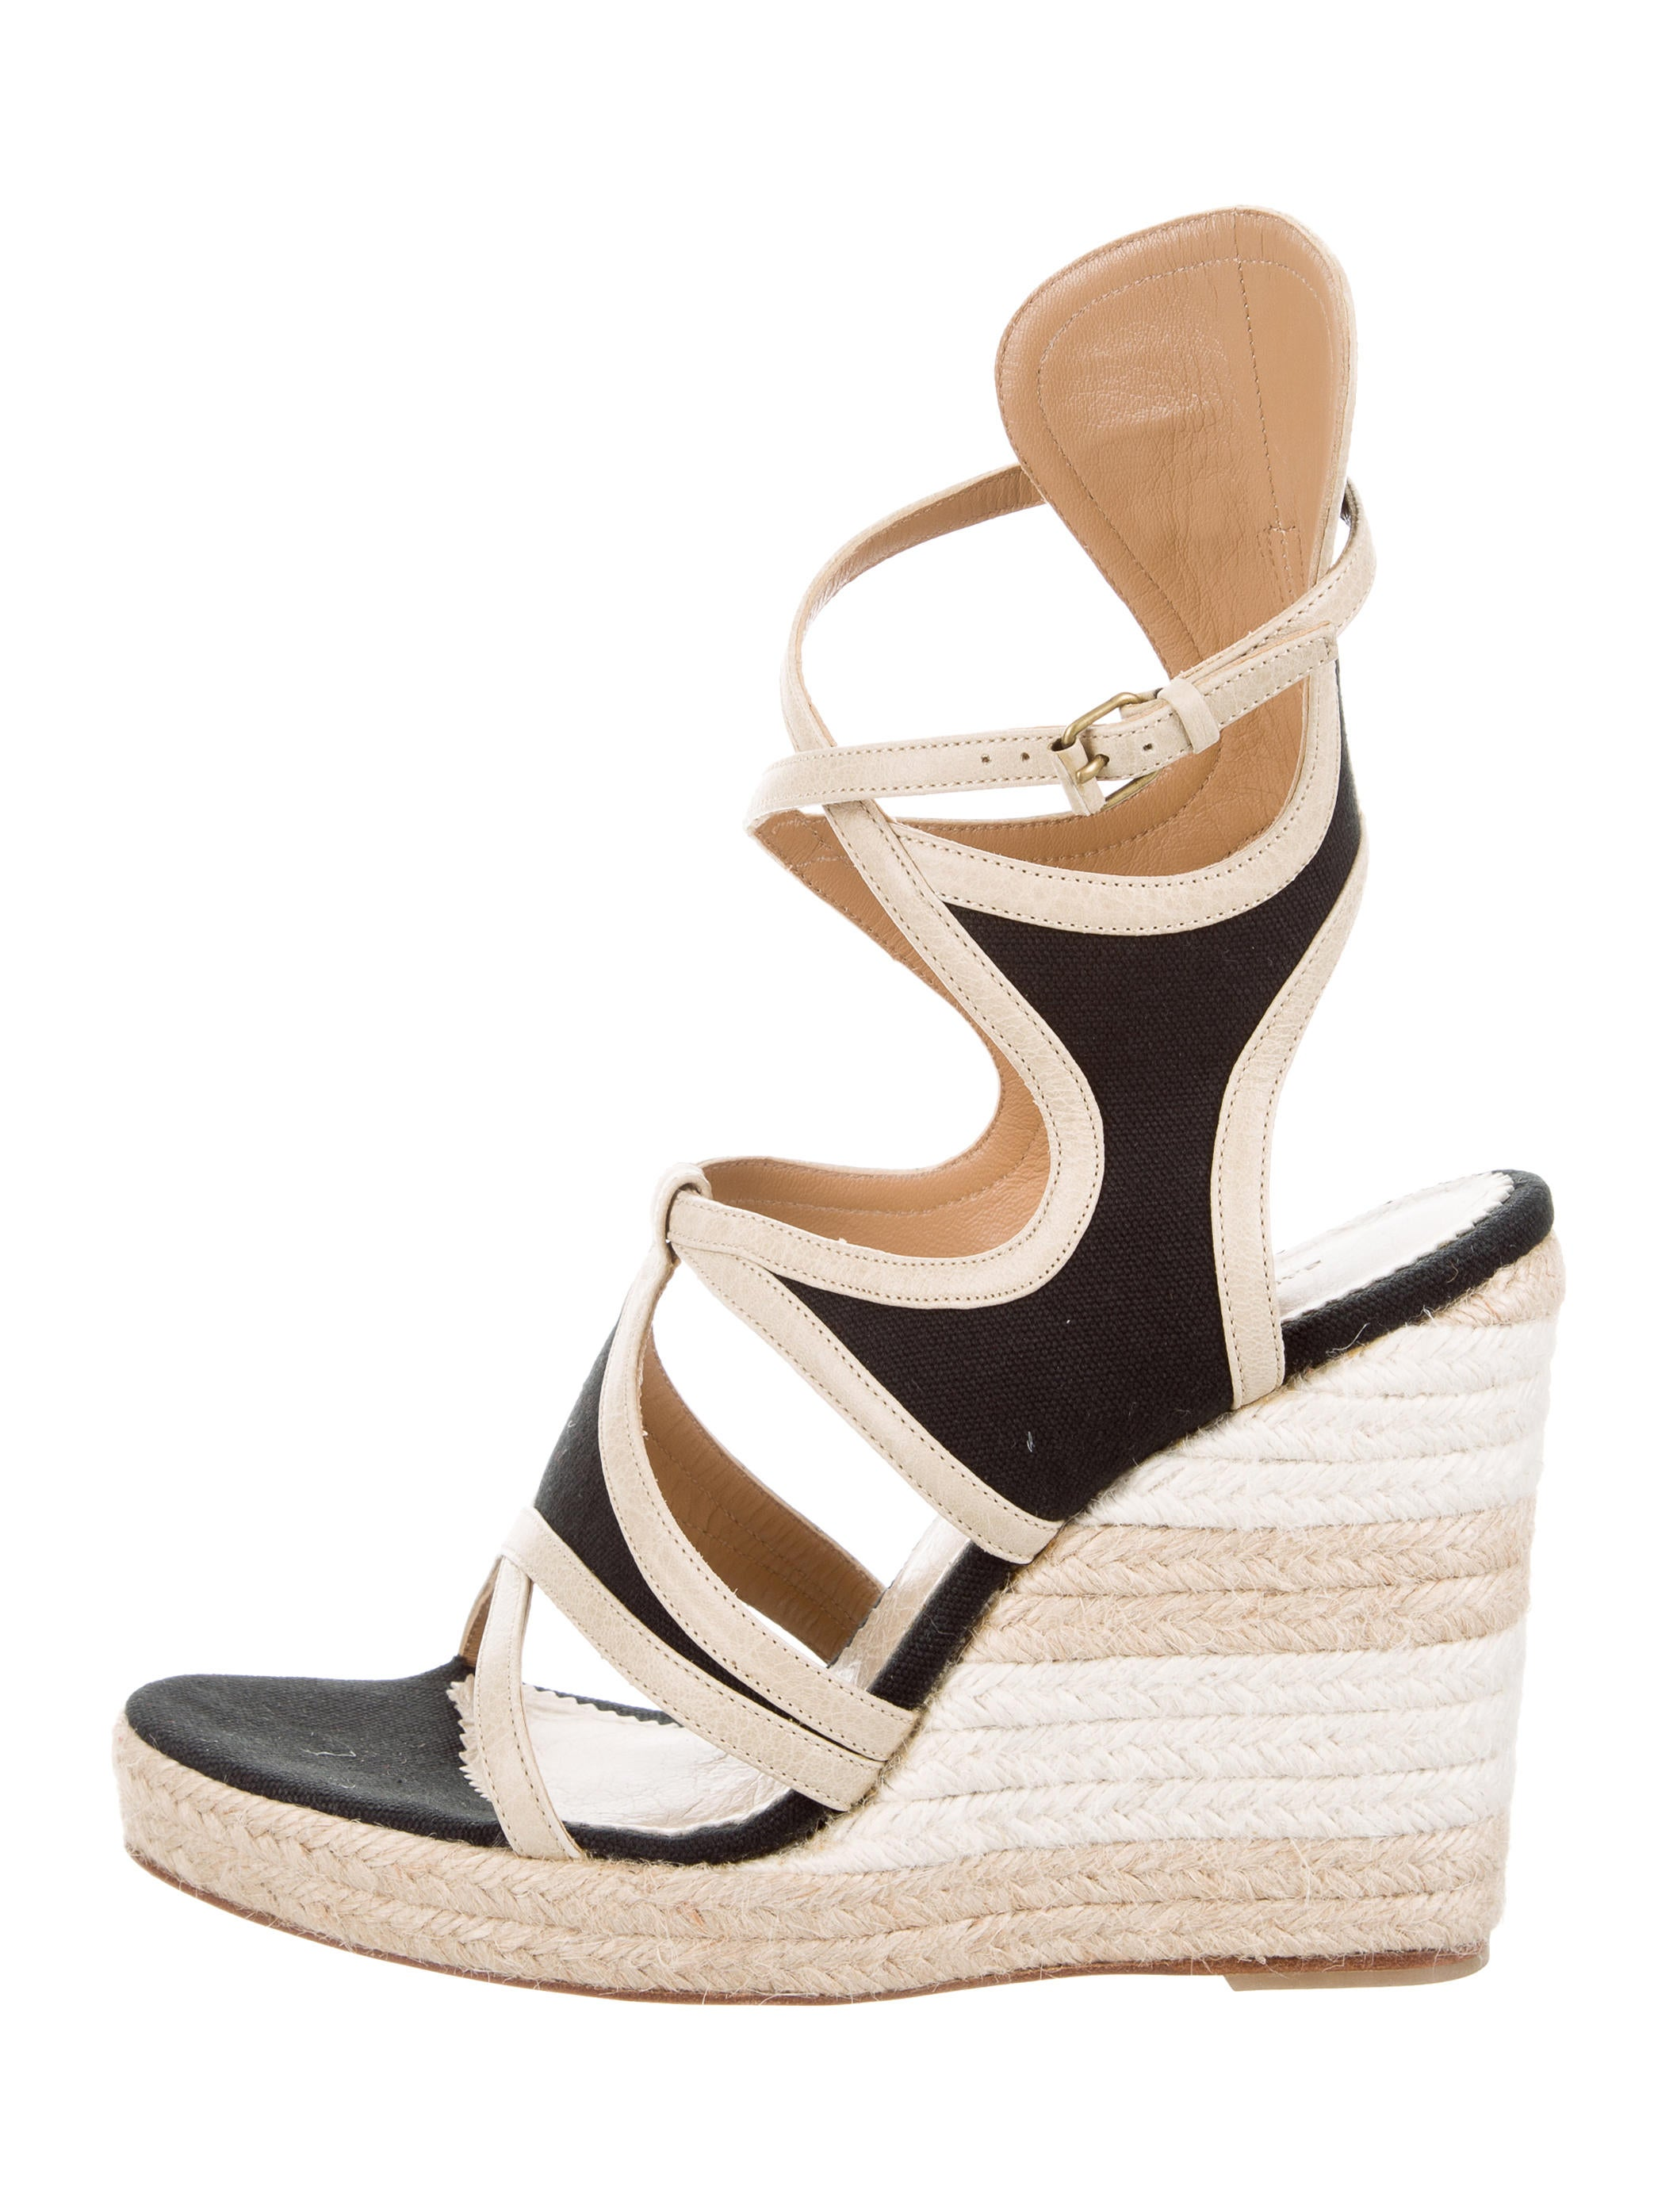 free shipping genuine Balenciaga Caged Espadrille Wedges 100% original sale online buy cheap manchester great sale browse for sale nicekicks EsULaA0